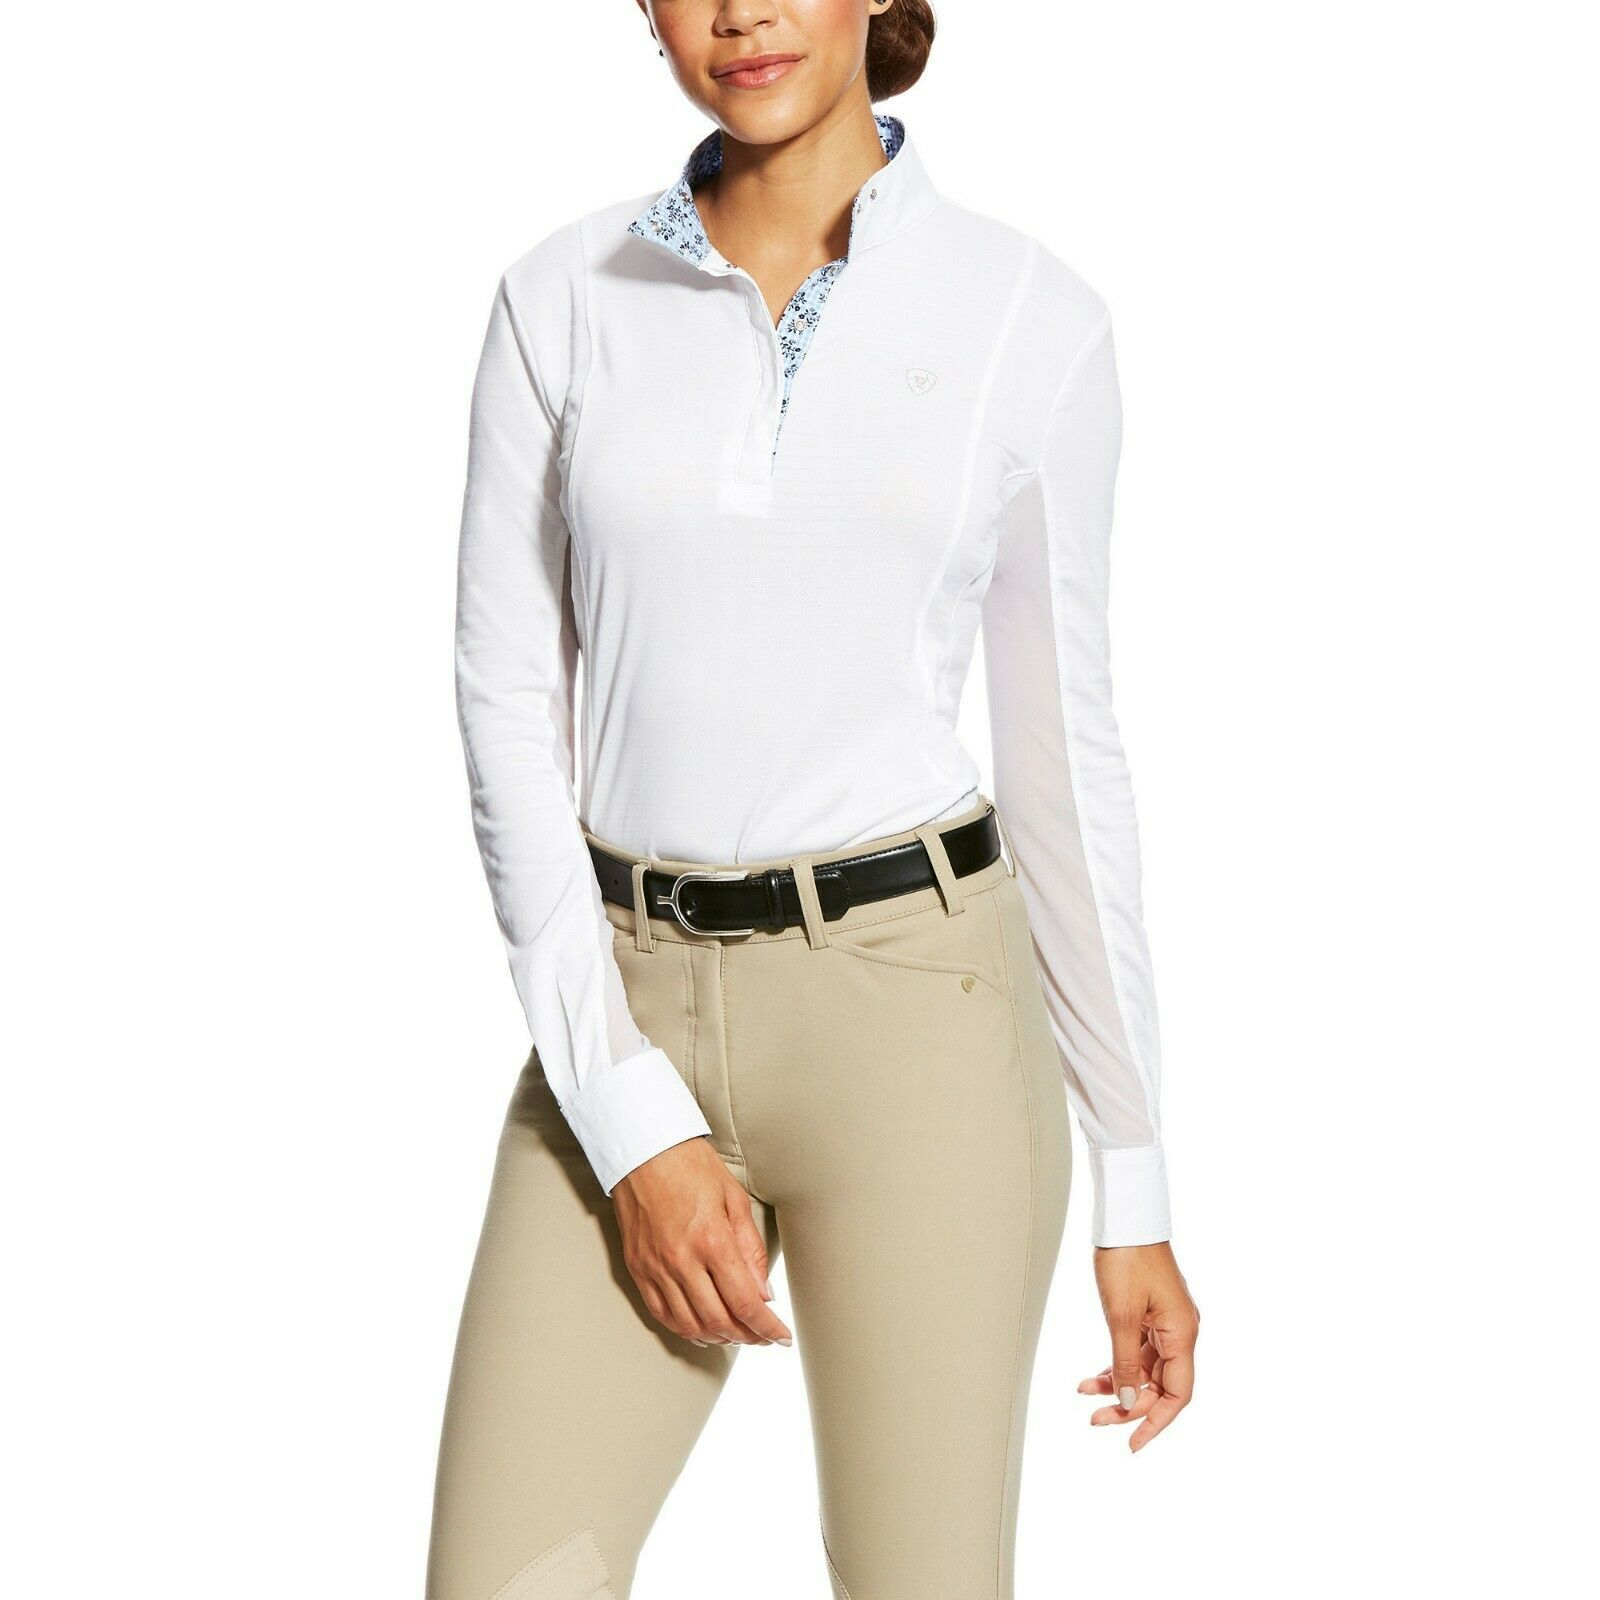 Ariat Women's Sunstopper Pro Show Shirt - Different colors and Sizes